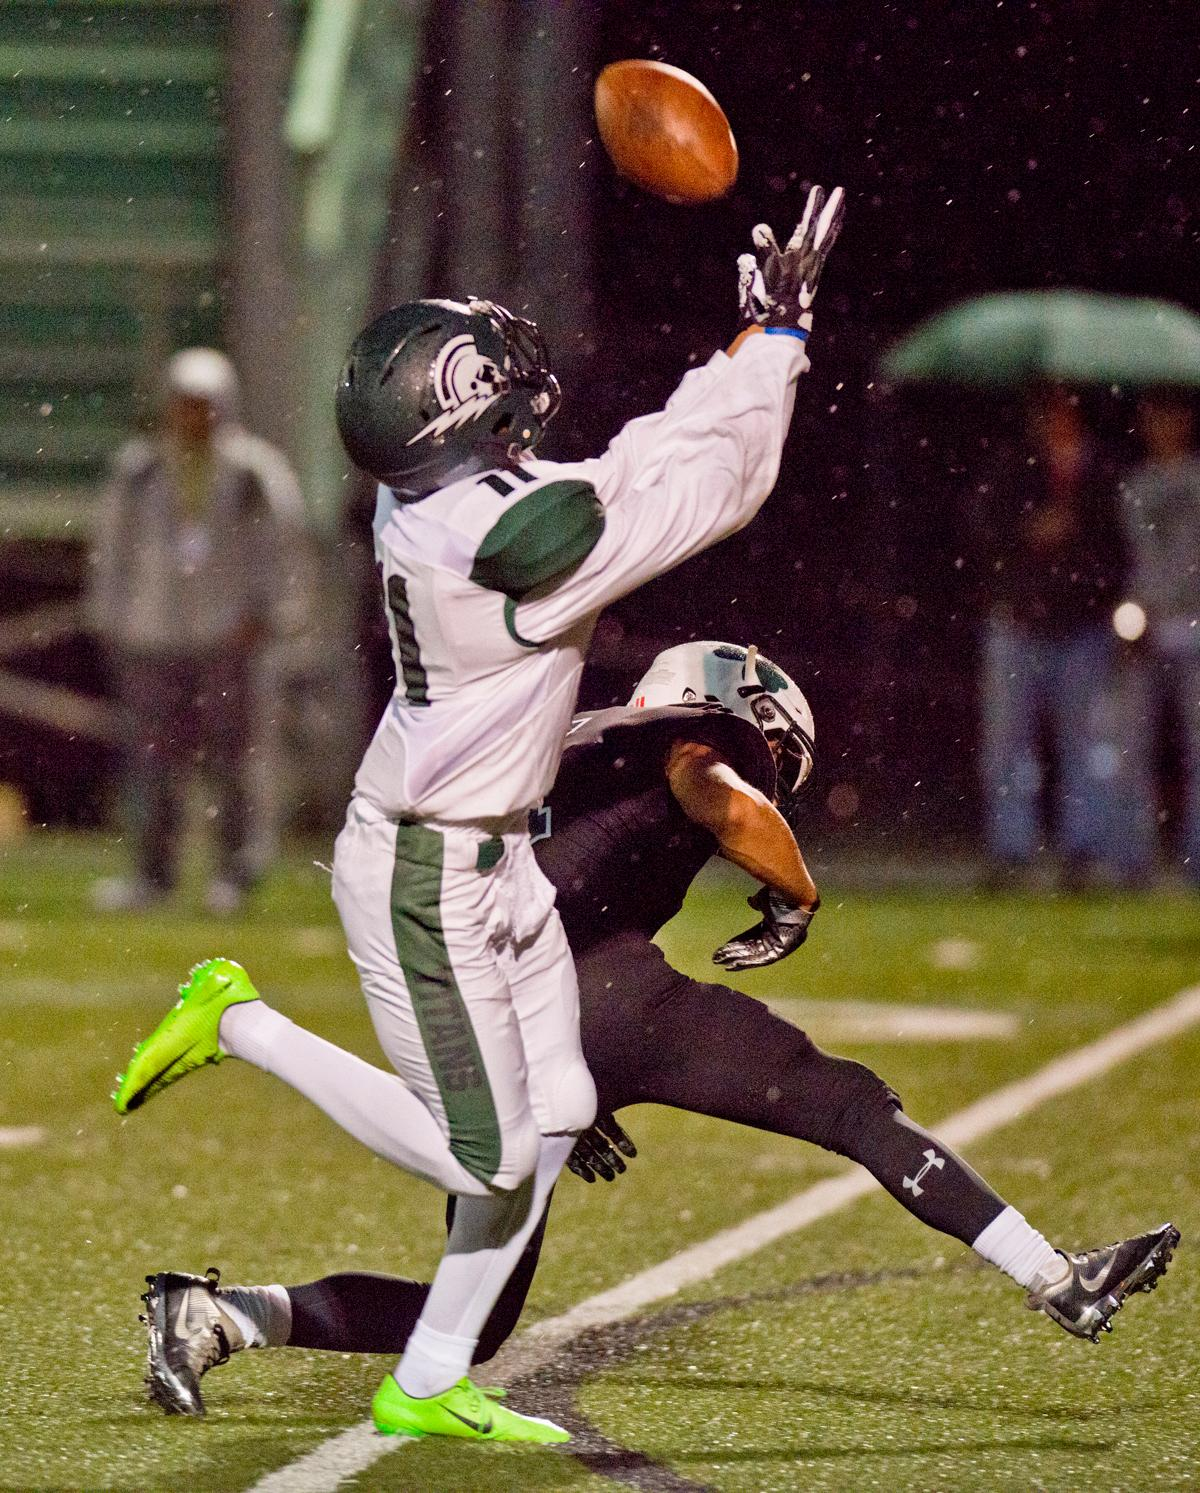 West Salem Titans wide receiver Stanley Green (#11) hauls in a long pass. On a rainy Monday evening Sheldon defeated West Salem 41-7. The game had been postponed from Friday due to unhealthy levels of smoke in the atmosphere due to nearby forest fires. Photo by Dan Morrison, Oregon News Lab